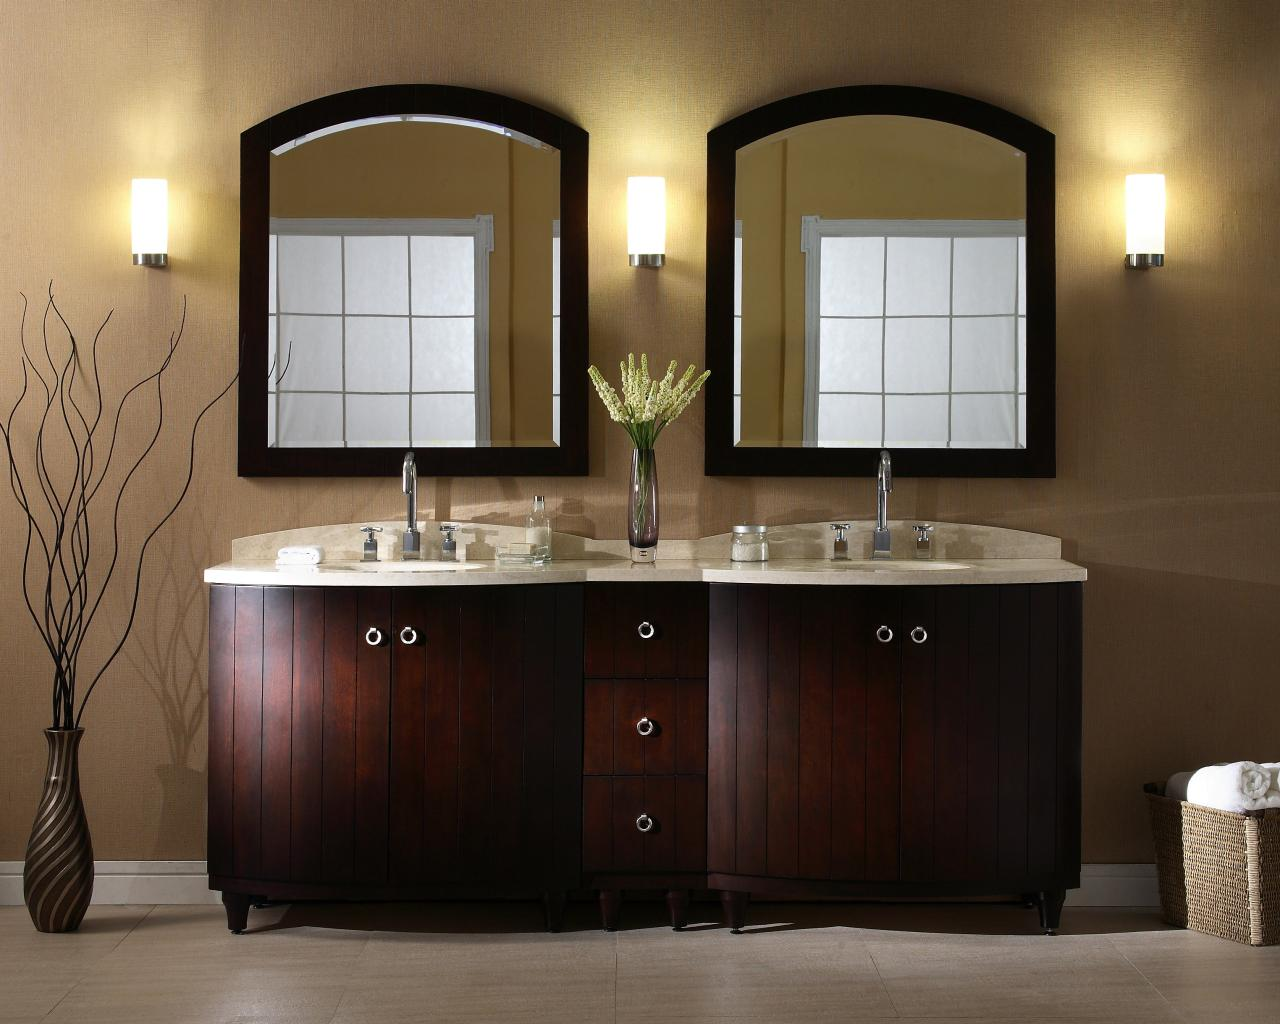 How to choose the perfect bathroom sink